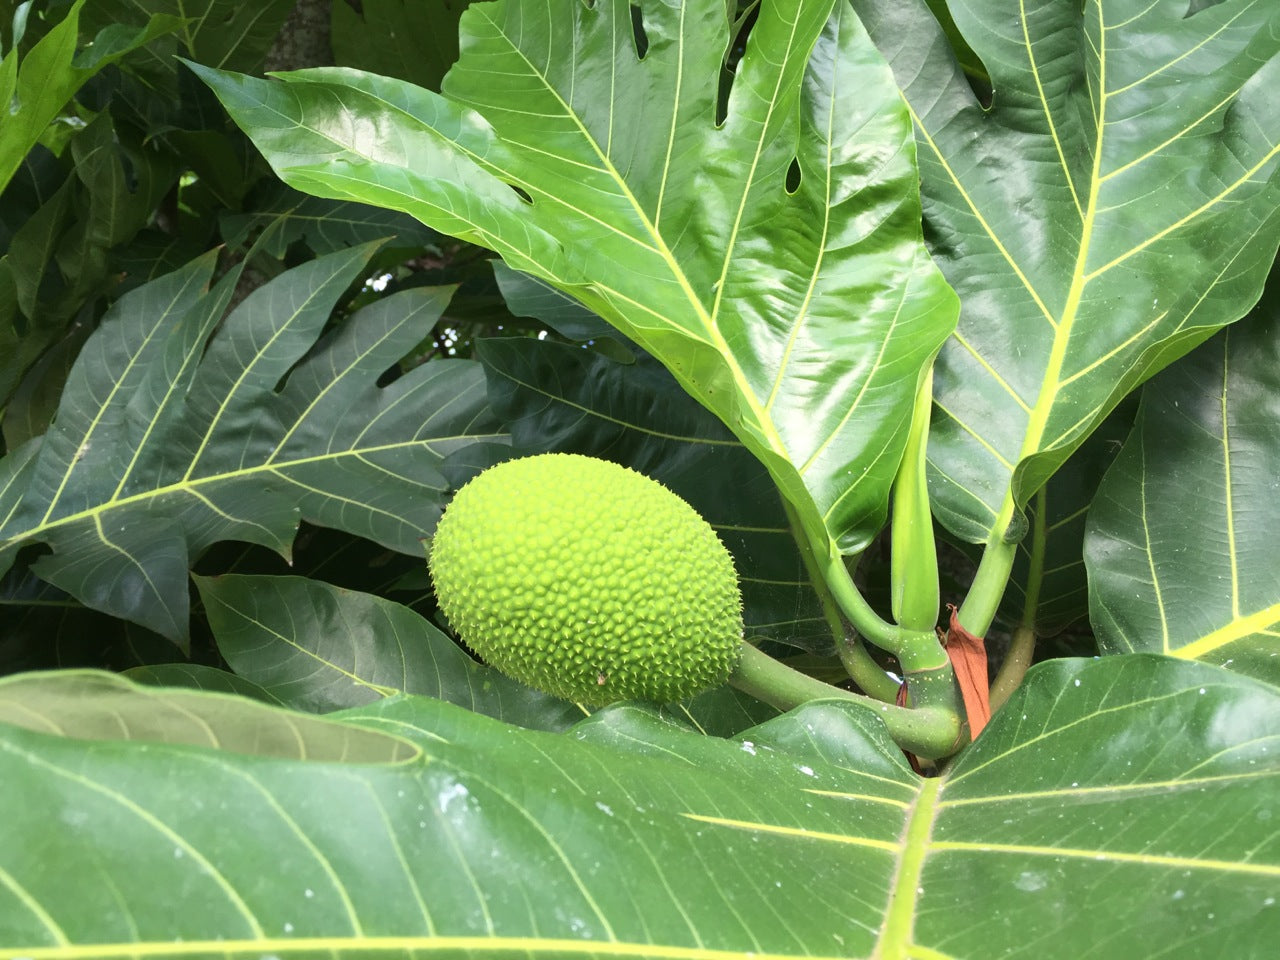 Properly prepared, breadfruit can be a tasty addition to many recipes